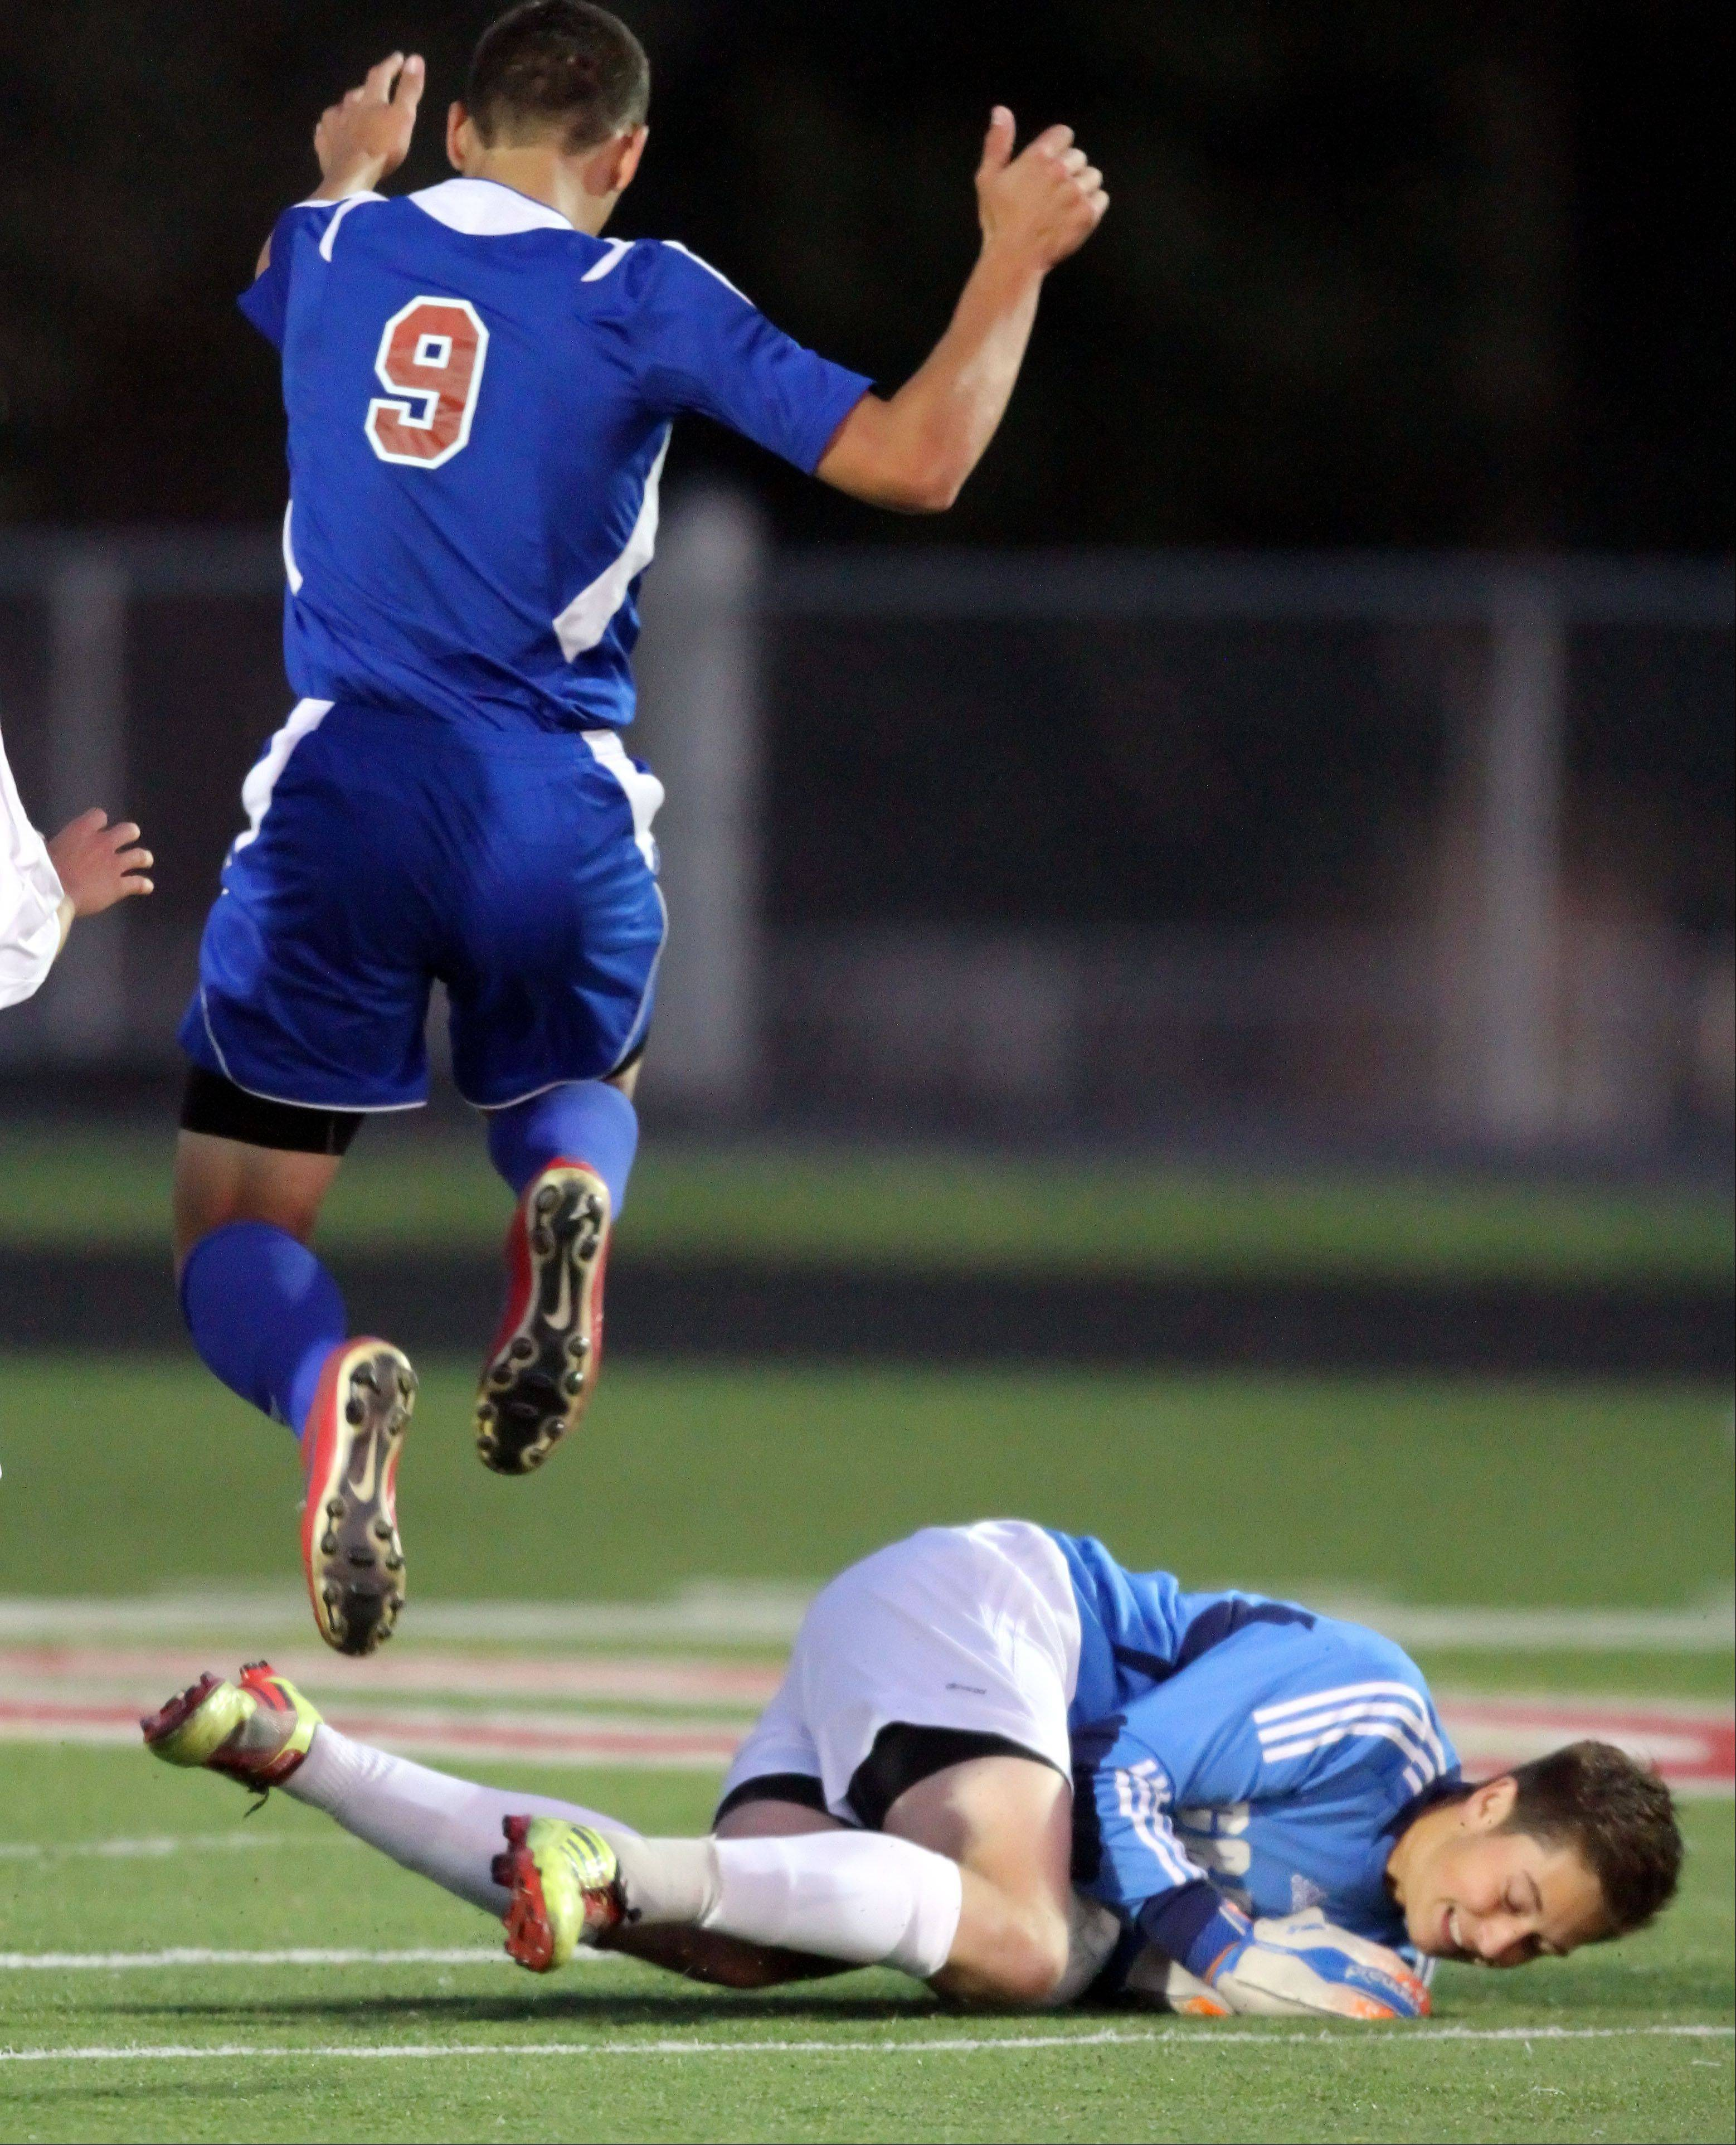 Lakes' Richard Galat, left, leaps as Grant goalie Nick Heidenthal makes a save Monday night at Grant.